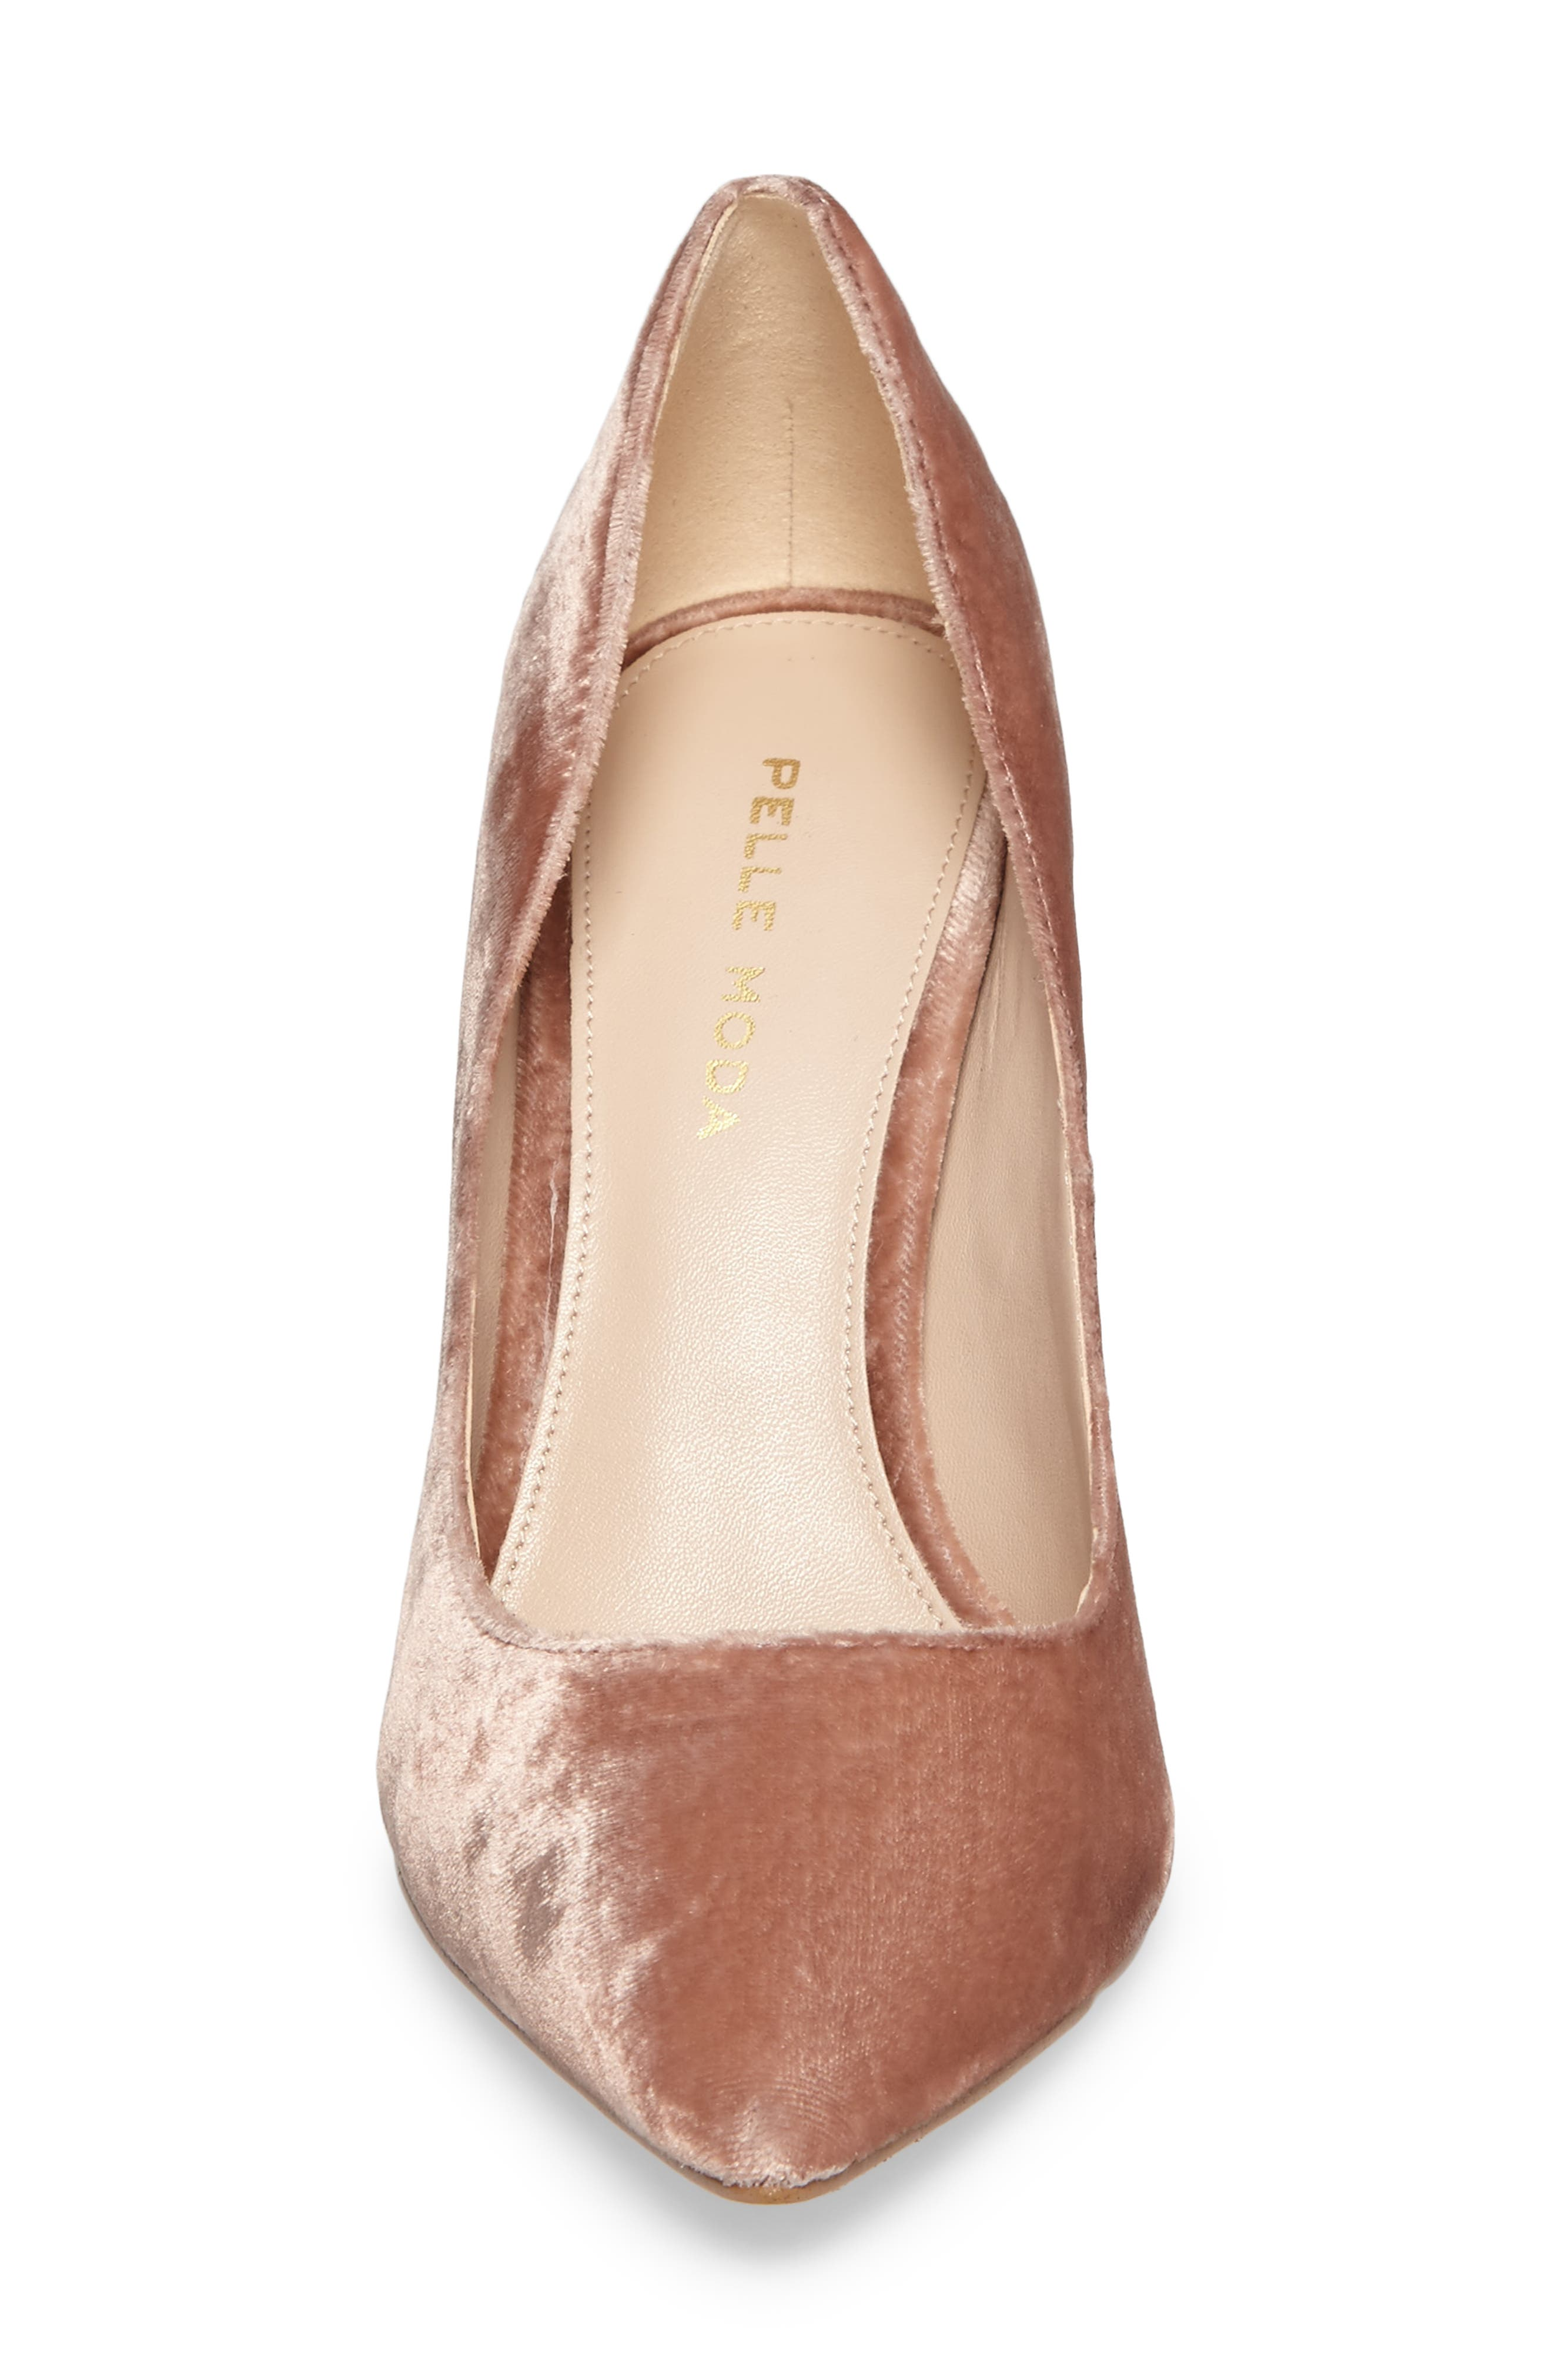 Vally2 Pointy Toe Pump,                             Alternate thumbnail 4, color,                             650